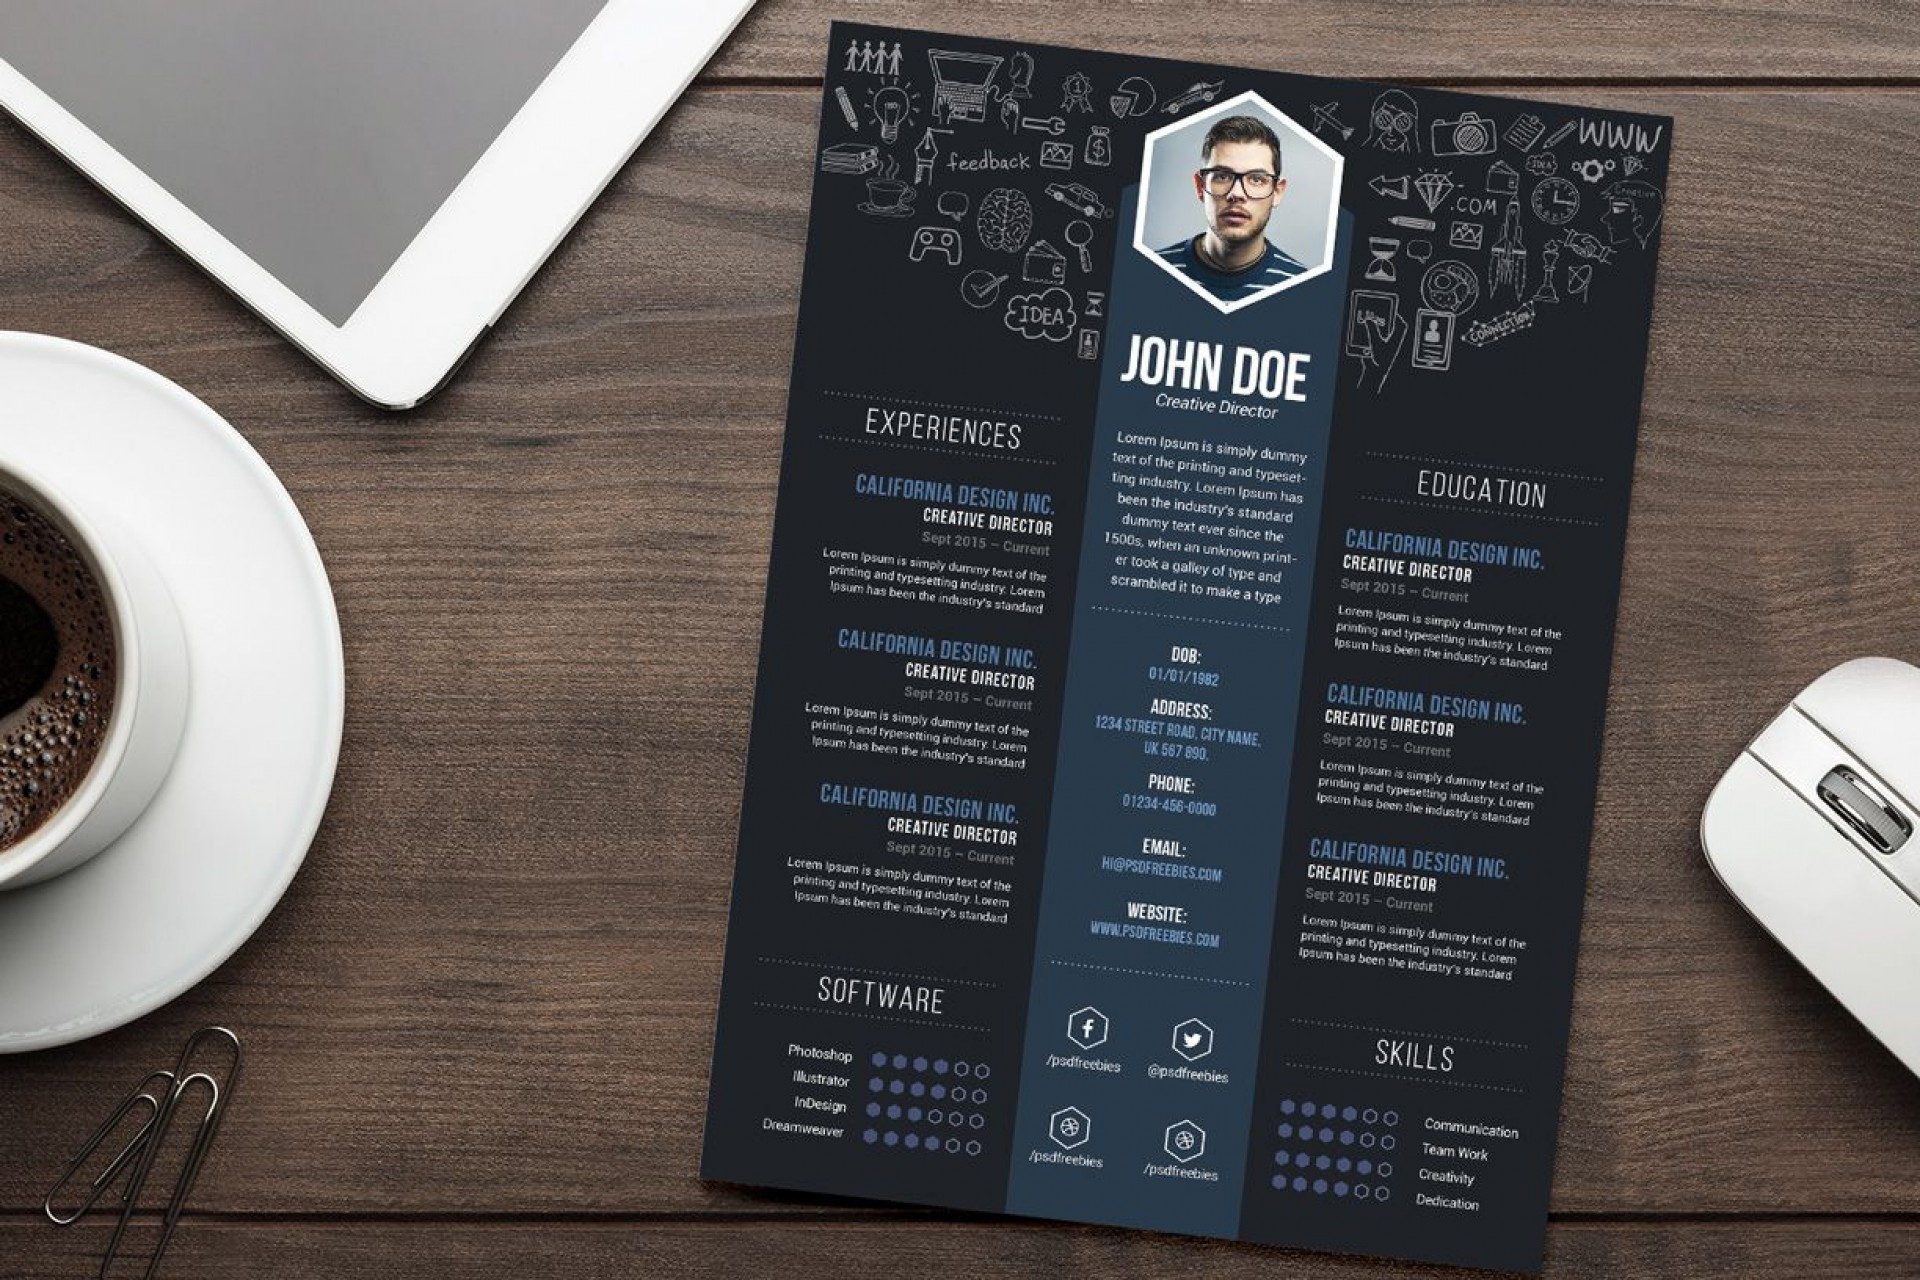 005 Sensational Cv Design Photoshop Template Free Sample  Creative Resume Psd Download1920